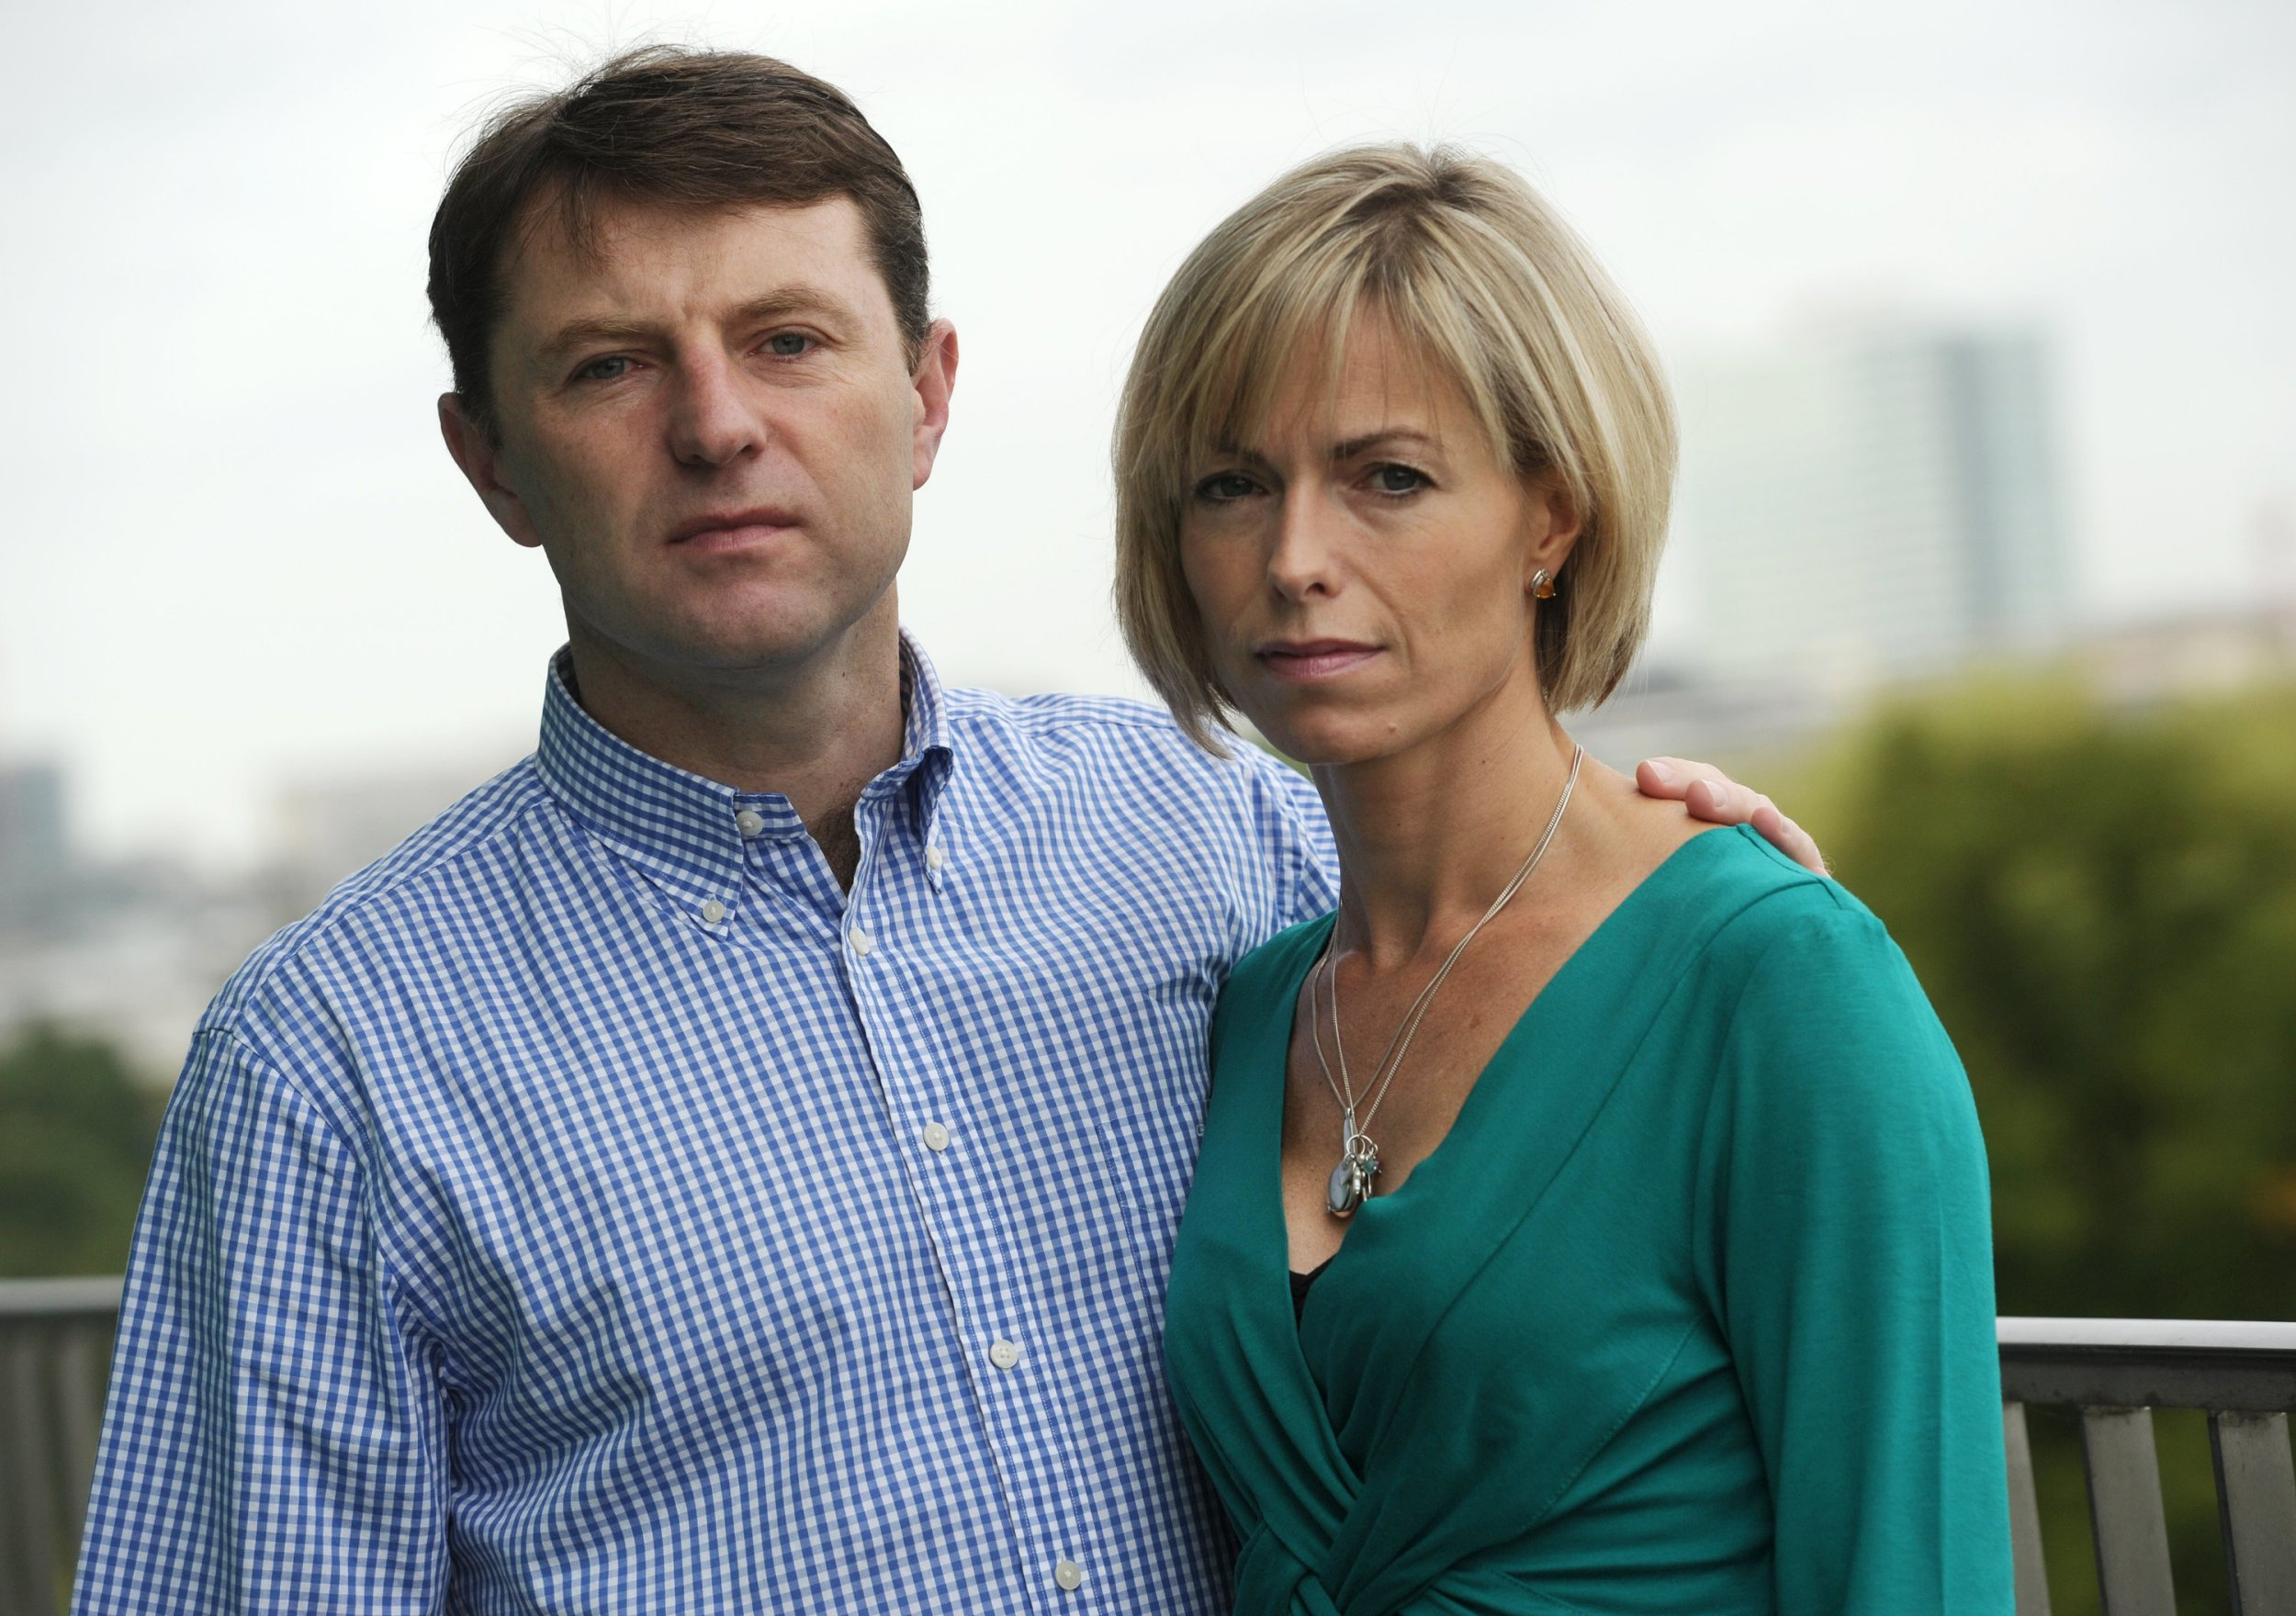 The parents of the missing girl Maddie, Kate and Gerry McCann, present their new book at a hotel in Hamburg, Germany, 16 September 2011. Maddie, Madeleine McCann disappeared four years ago without a trace from the families hotel room. In an extraordinary campaign, the parents tried to find her, but without results. Now they speak about their time of suffering, their hopes and throwbacks in their book 'Madeleine. Our daughters disappearance and the continuing search for her' by Kate McCann. Photo: Christian Charisius